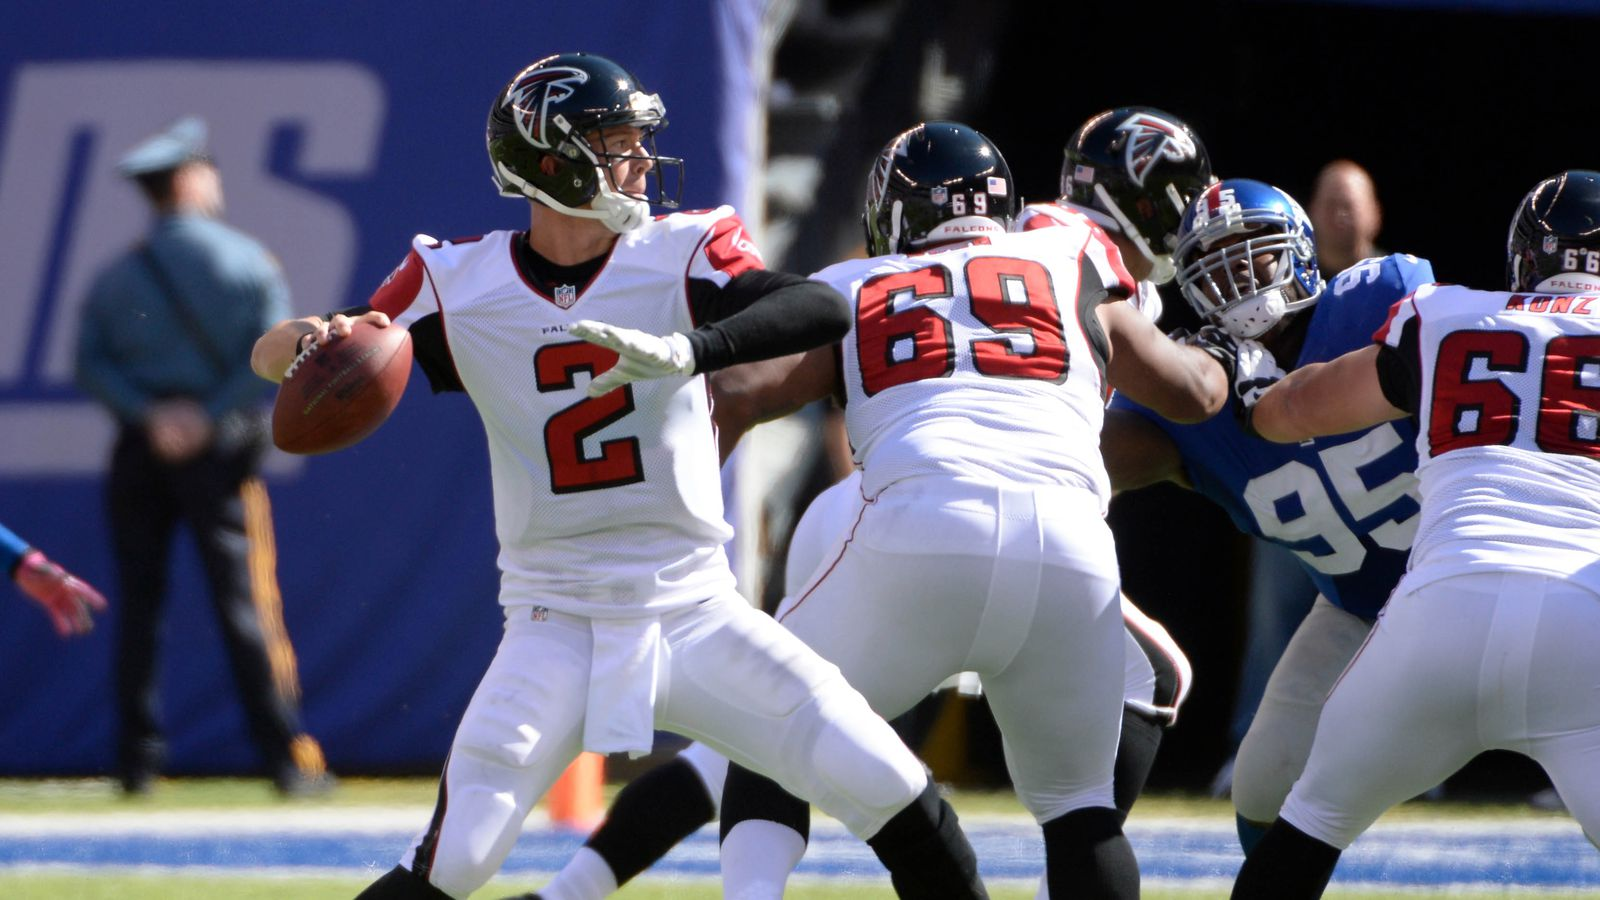 Nike jerseys for sale - Falcons vs. Giants 2015: Who to Watch in a Week 2 Showdown - The ...